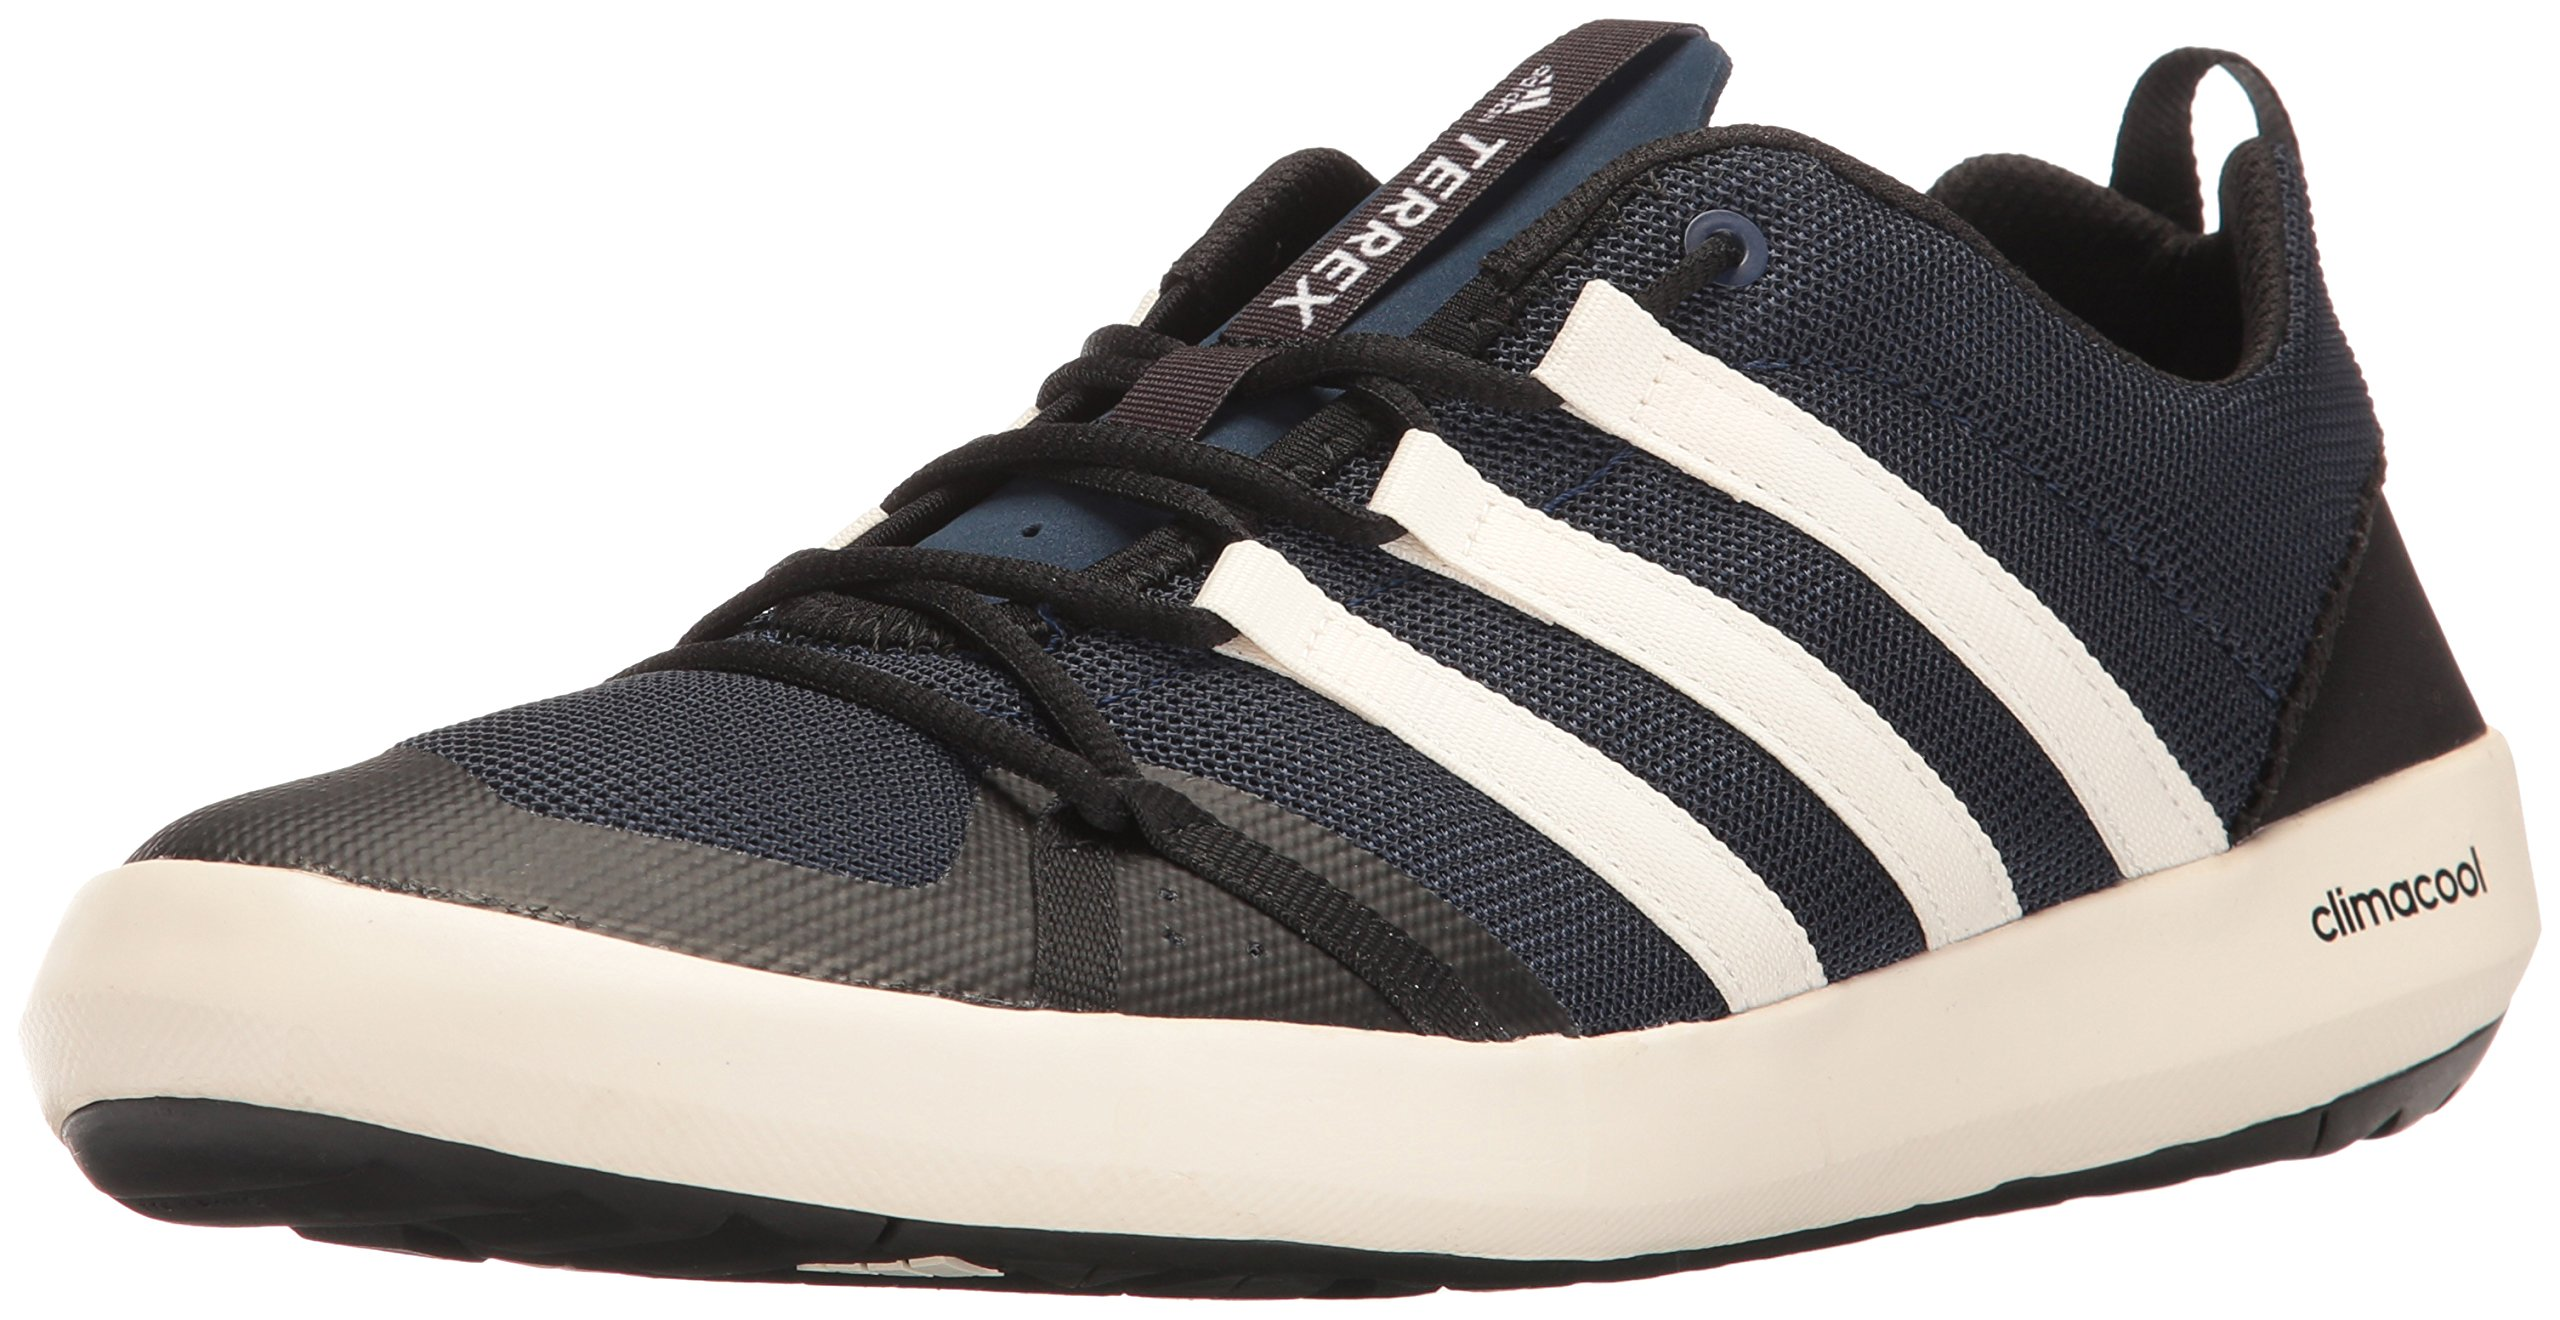 adidas outdoor Men's Terrex Climacool Boat Water Shoe, Collegiate Navy/Chalk White/Black, 9.5 M US by adidas outdoor